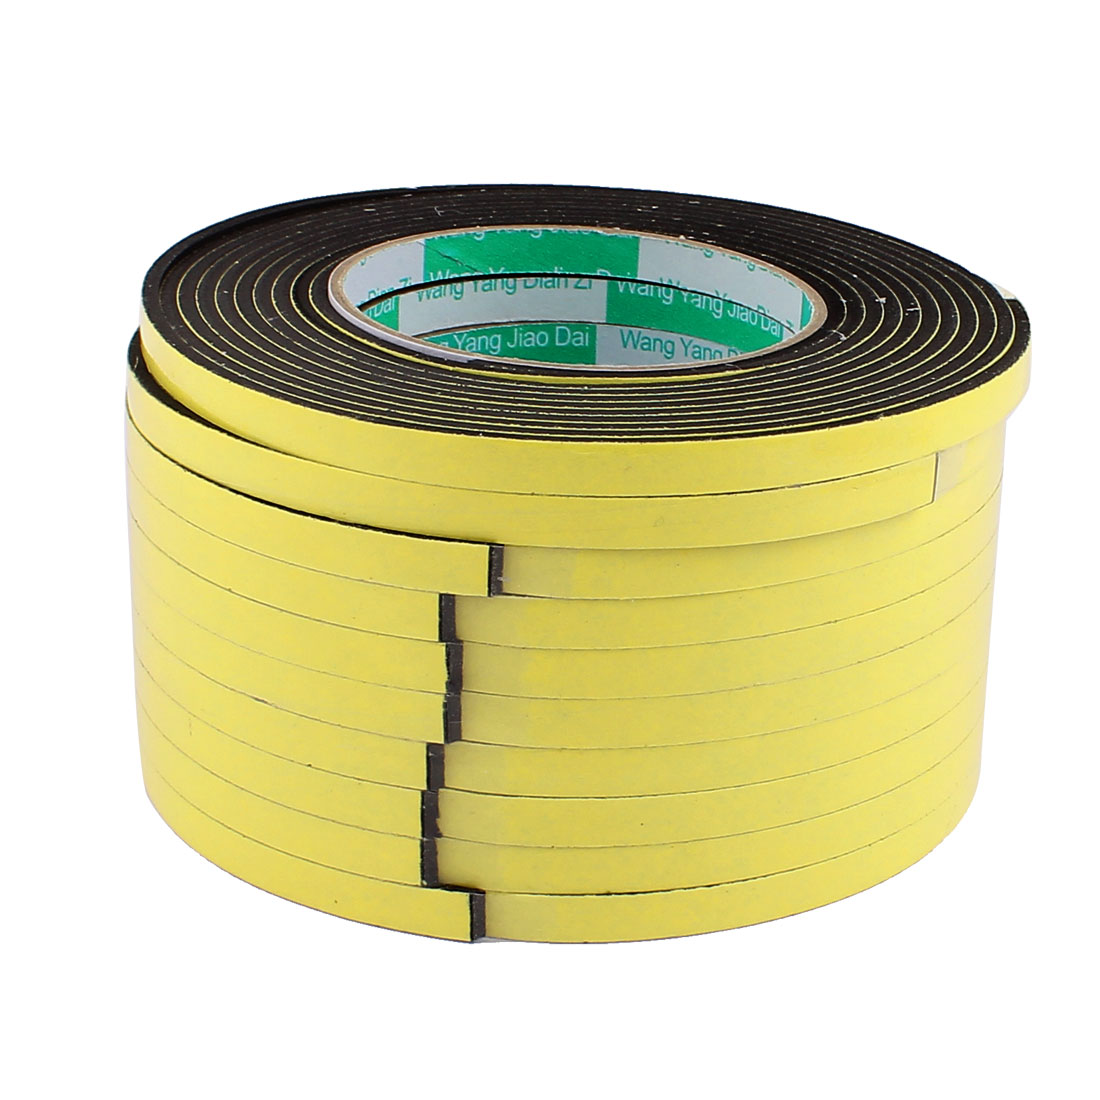 10 Pcs 0.8CM Width 4M Length 3MM Thick Single Sided Sealing Shockproof Sponge Tape